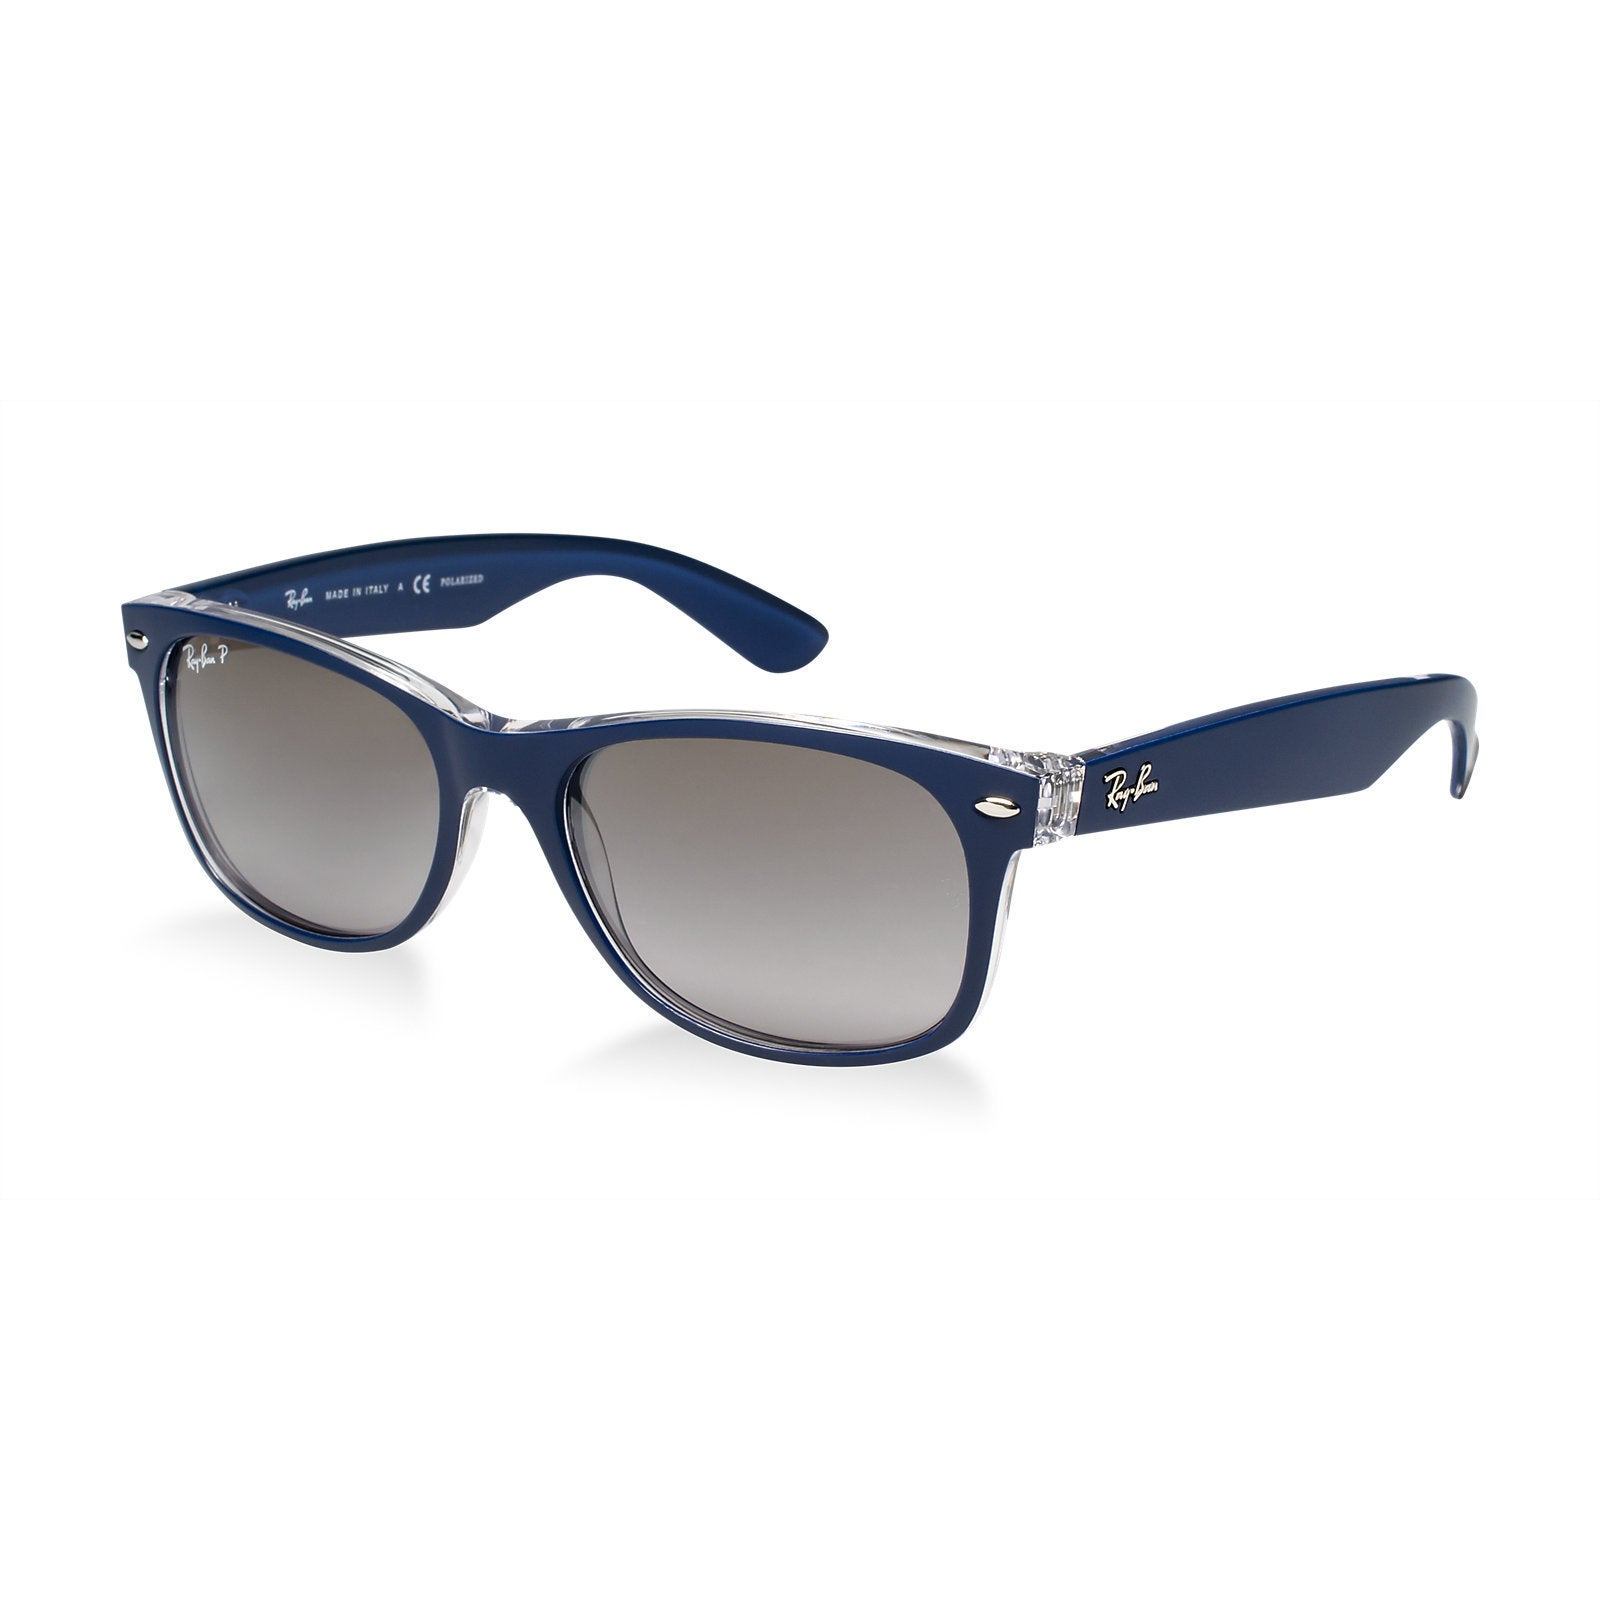 716c8383df4 Ray-Ban RB2132 6053M3 New Wayfarer Blue Clear Frame Polarized Grey Gradient  55mm Lens Sunglasses